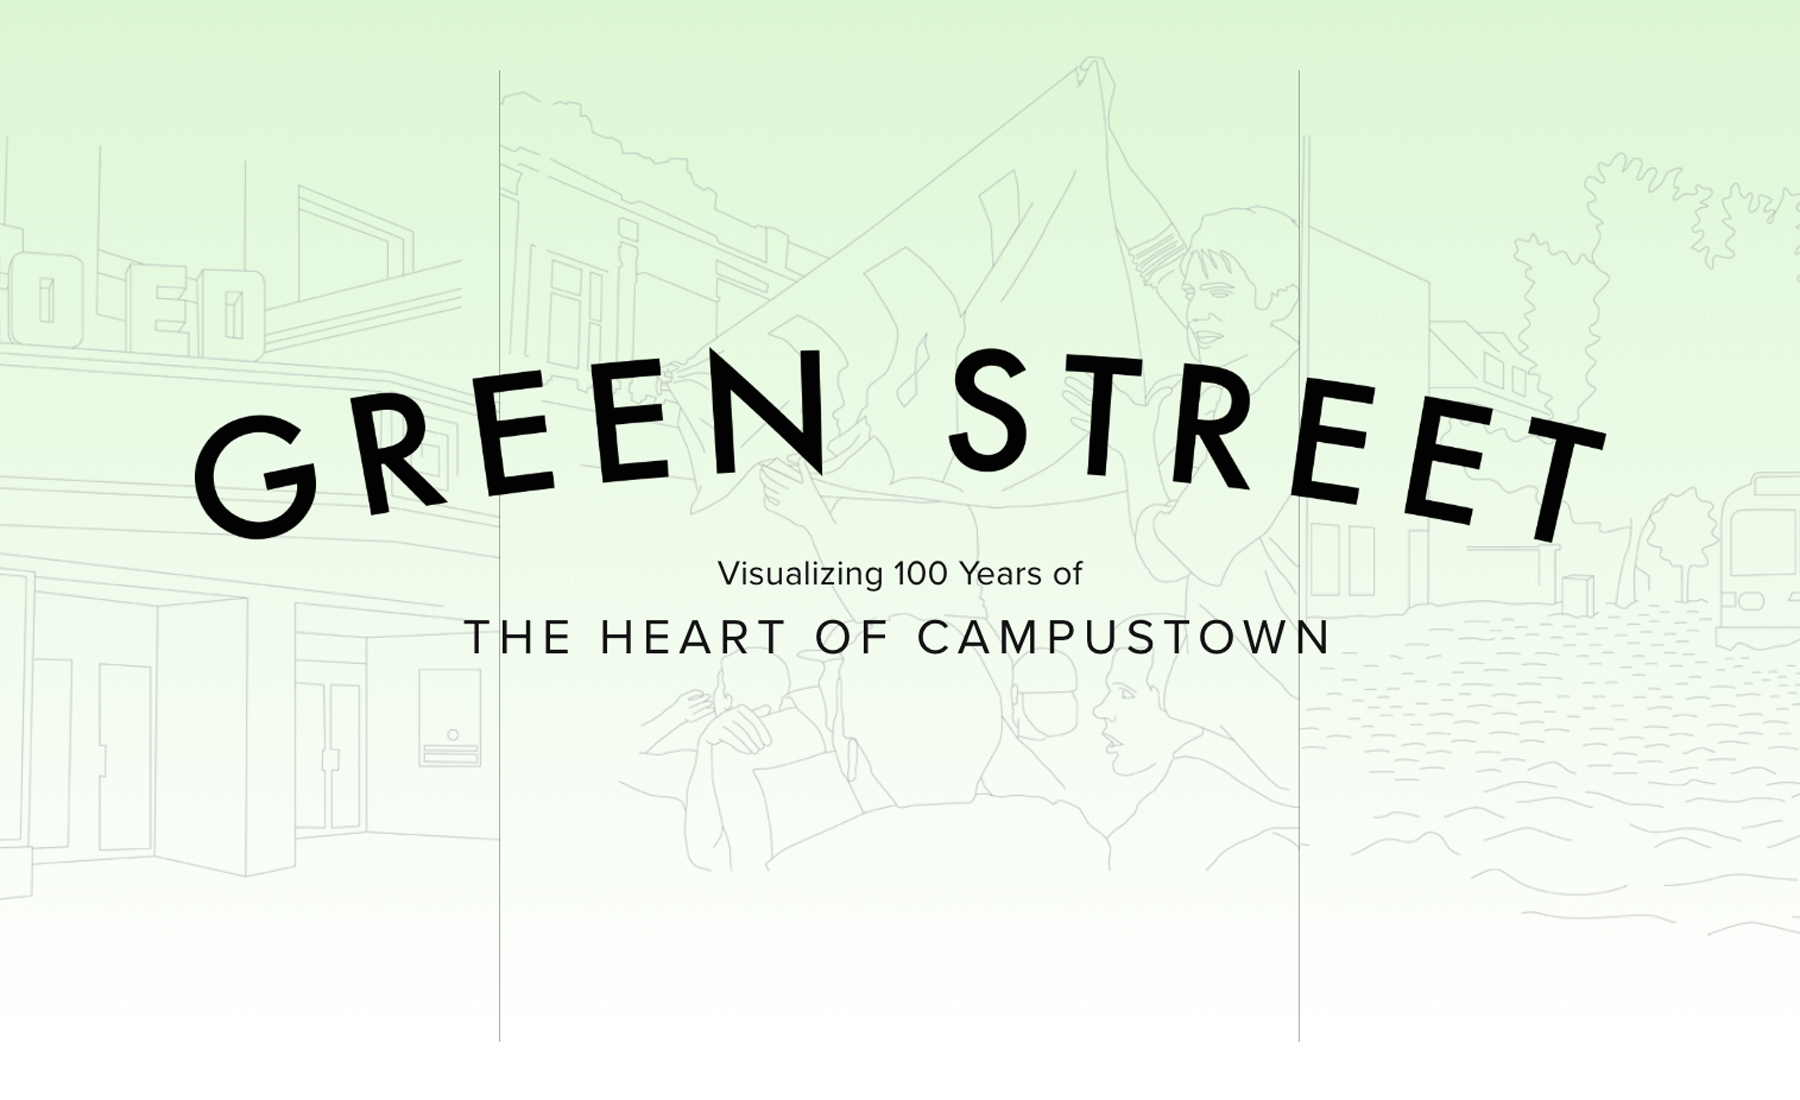 Title slide graphic. Line drawings of campustown scenes